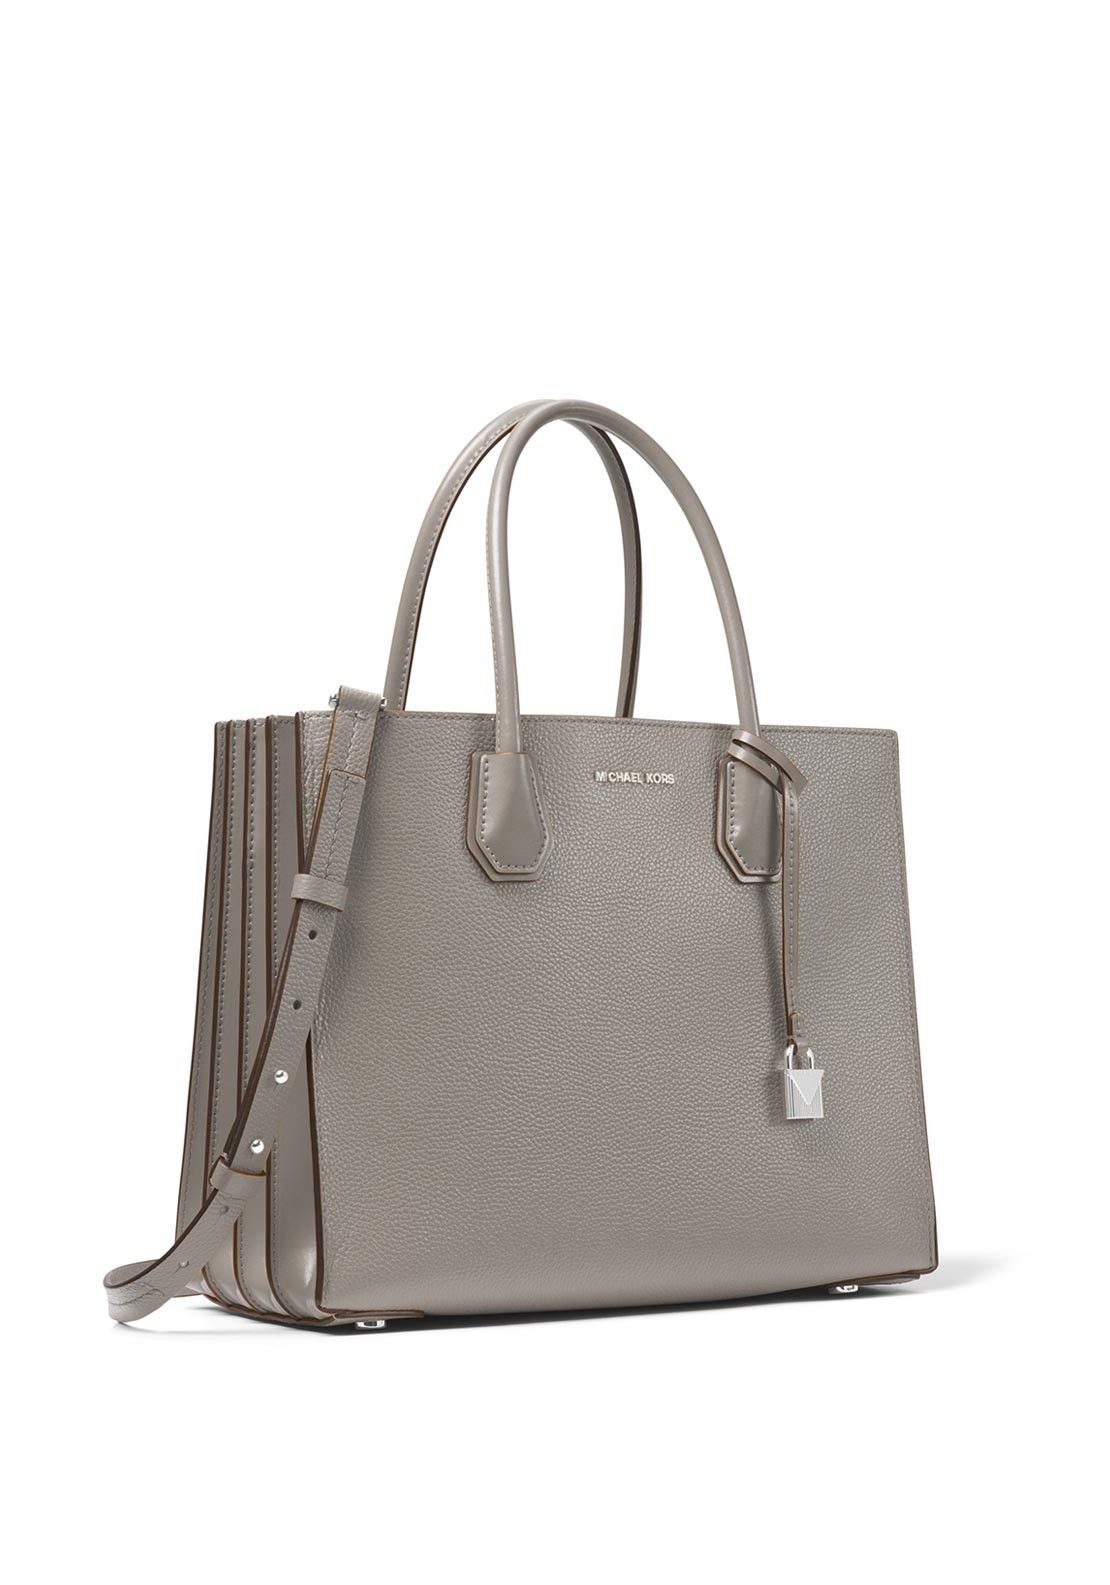 485f8b8fa Michael Kors Mercer Shoulder Bag, Pearl Grey. Be the first to review this  product